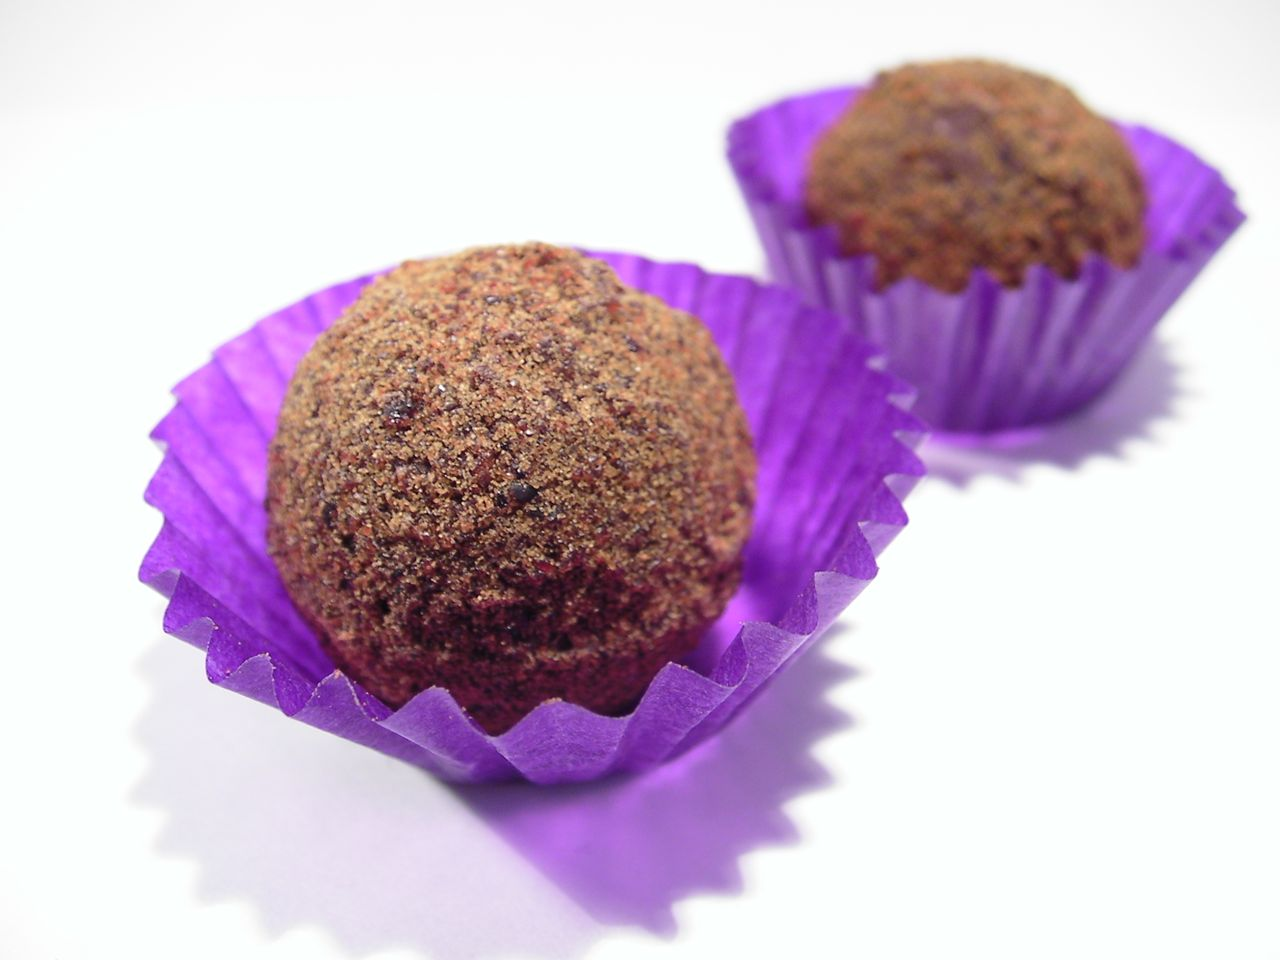 These Soreen truffles are large, with a hard, slightly sticky ...